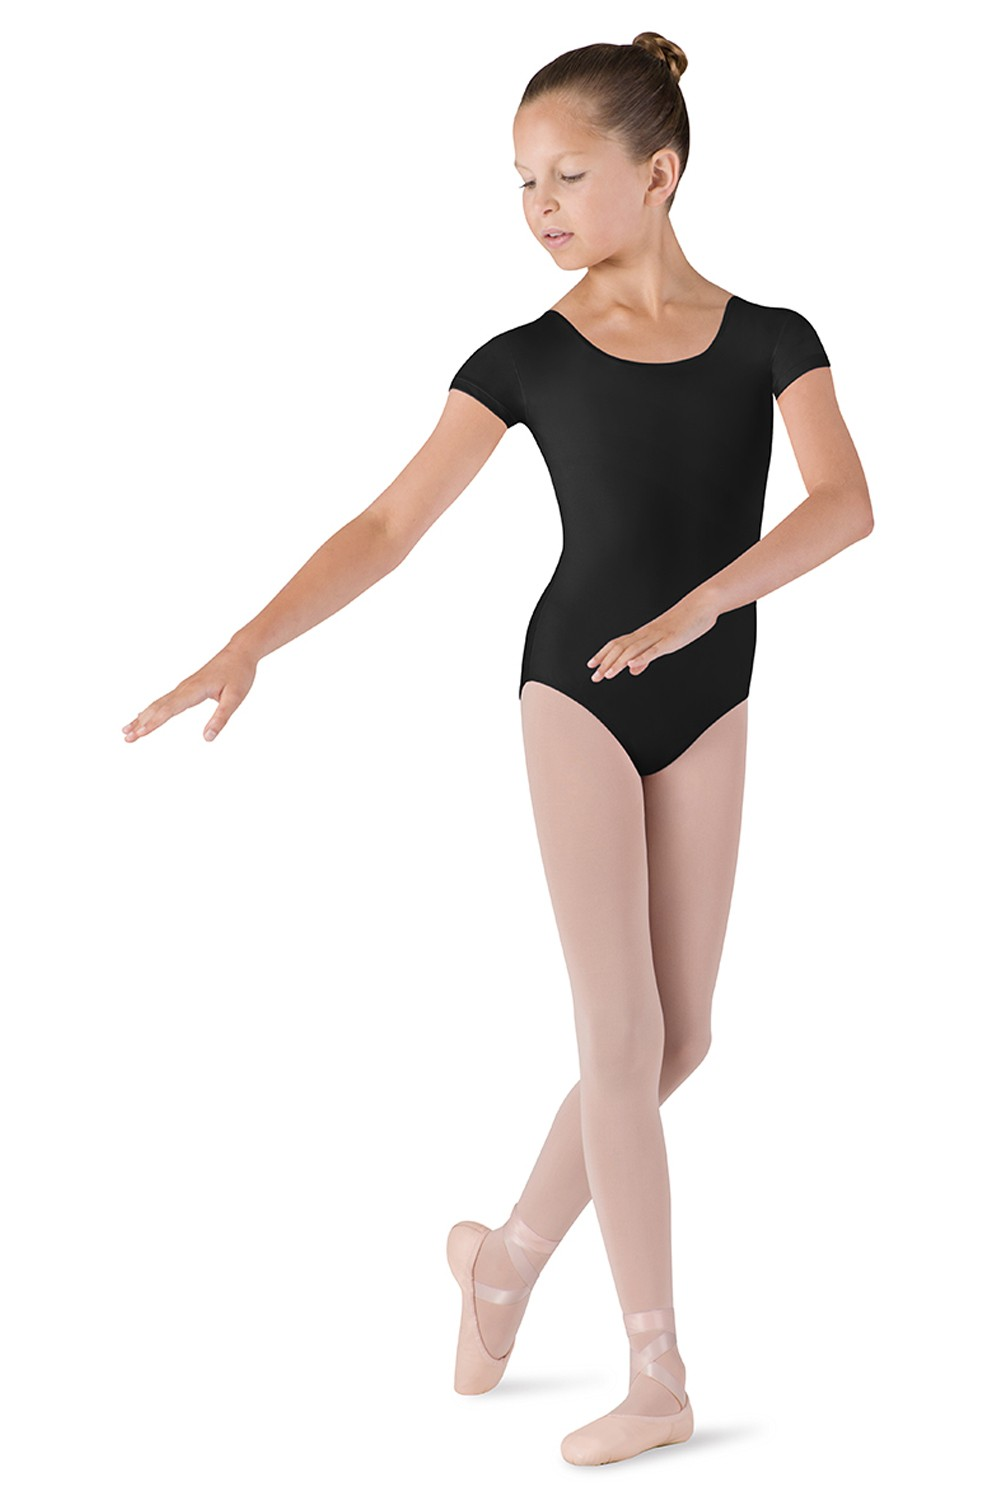 Dujour Children's Dance Leotards